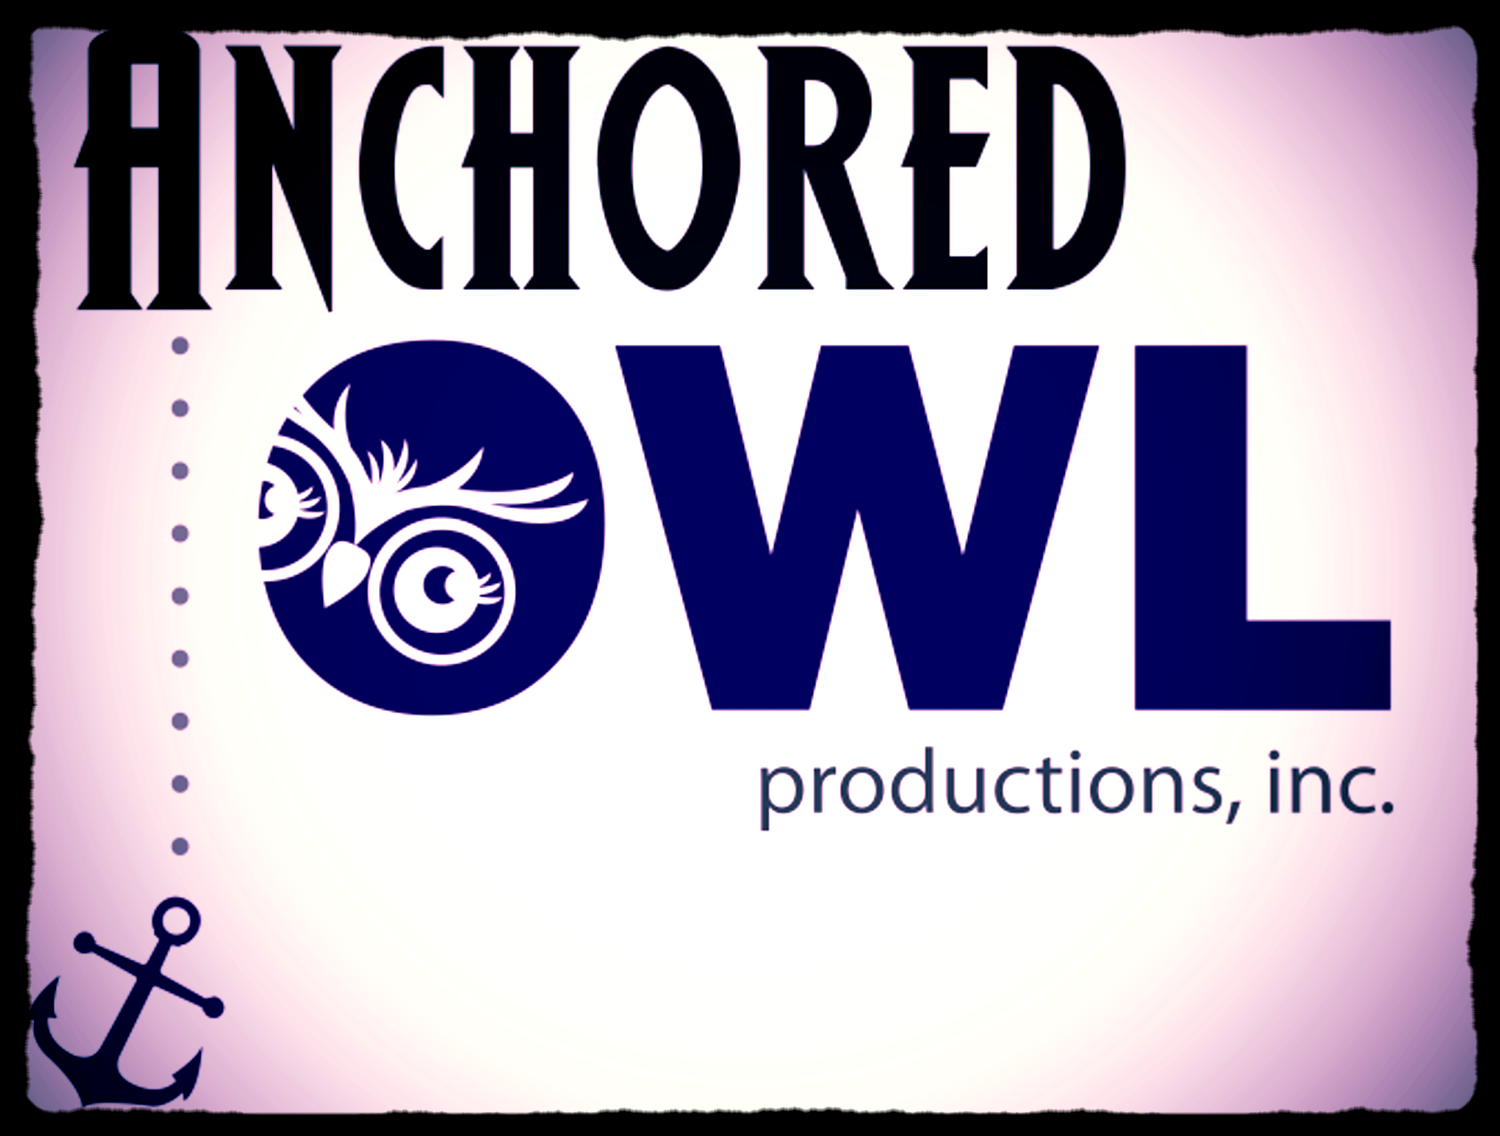 Anchored Owl Productions, Inc.